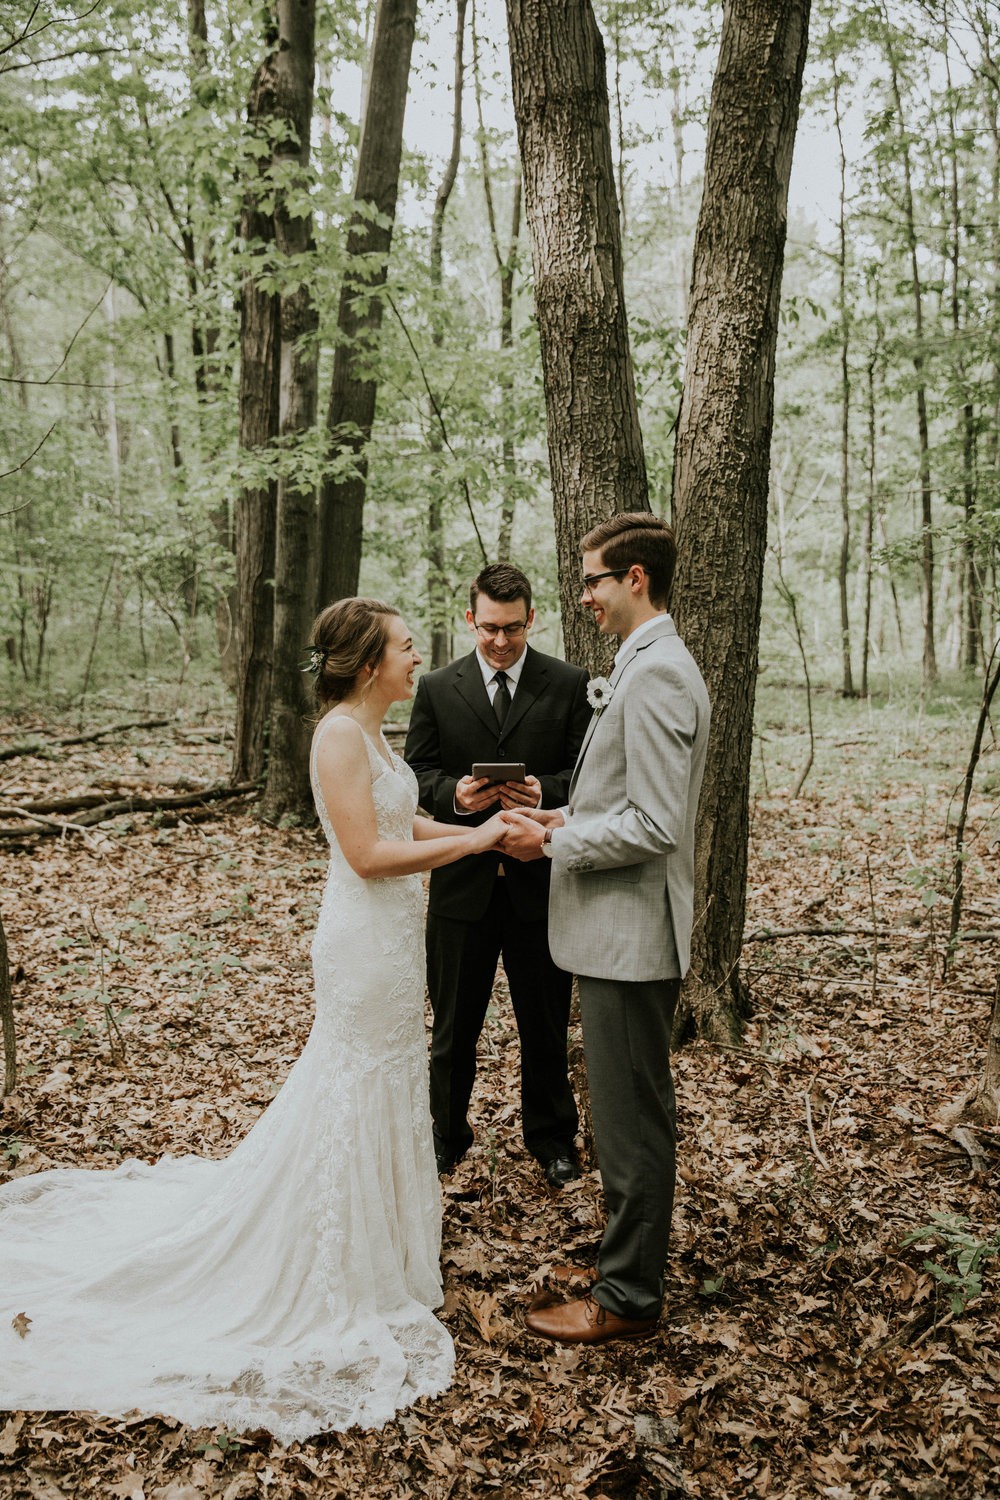 Grace E. Jones Photography